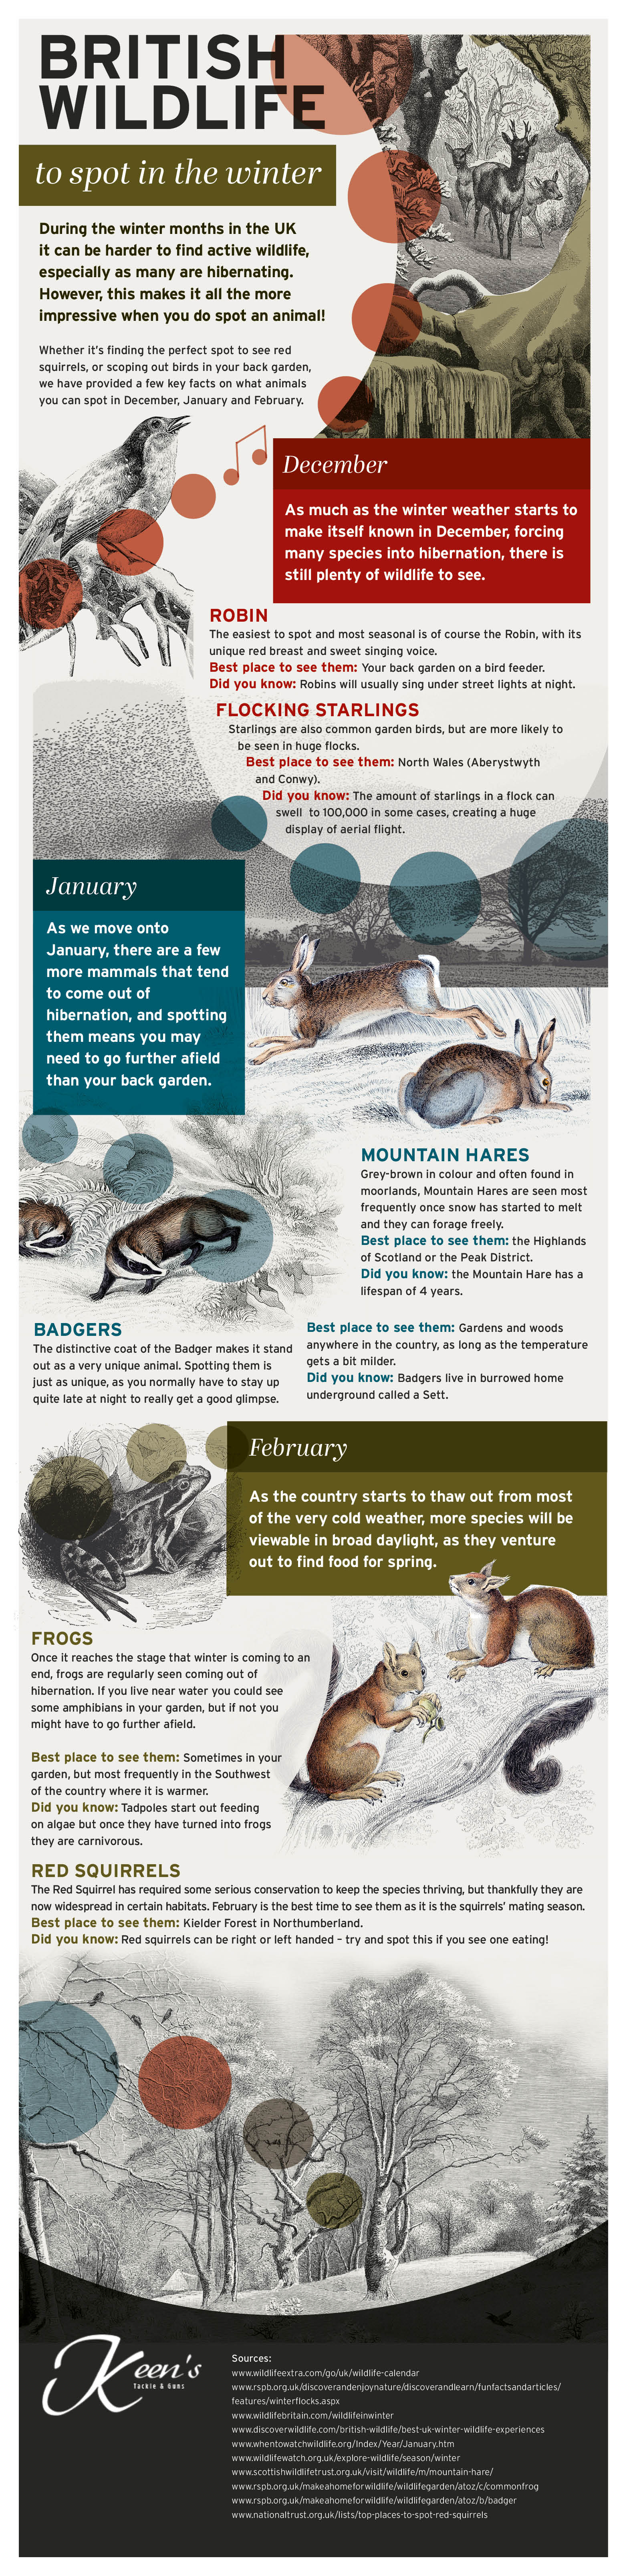 British Wildlife to Spot in the Winter Infographic